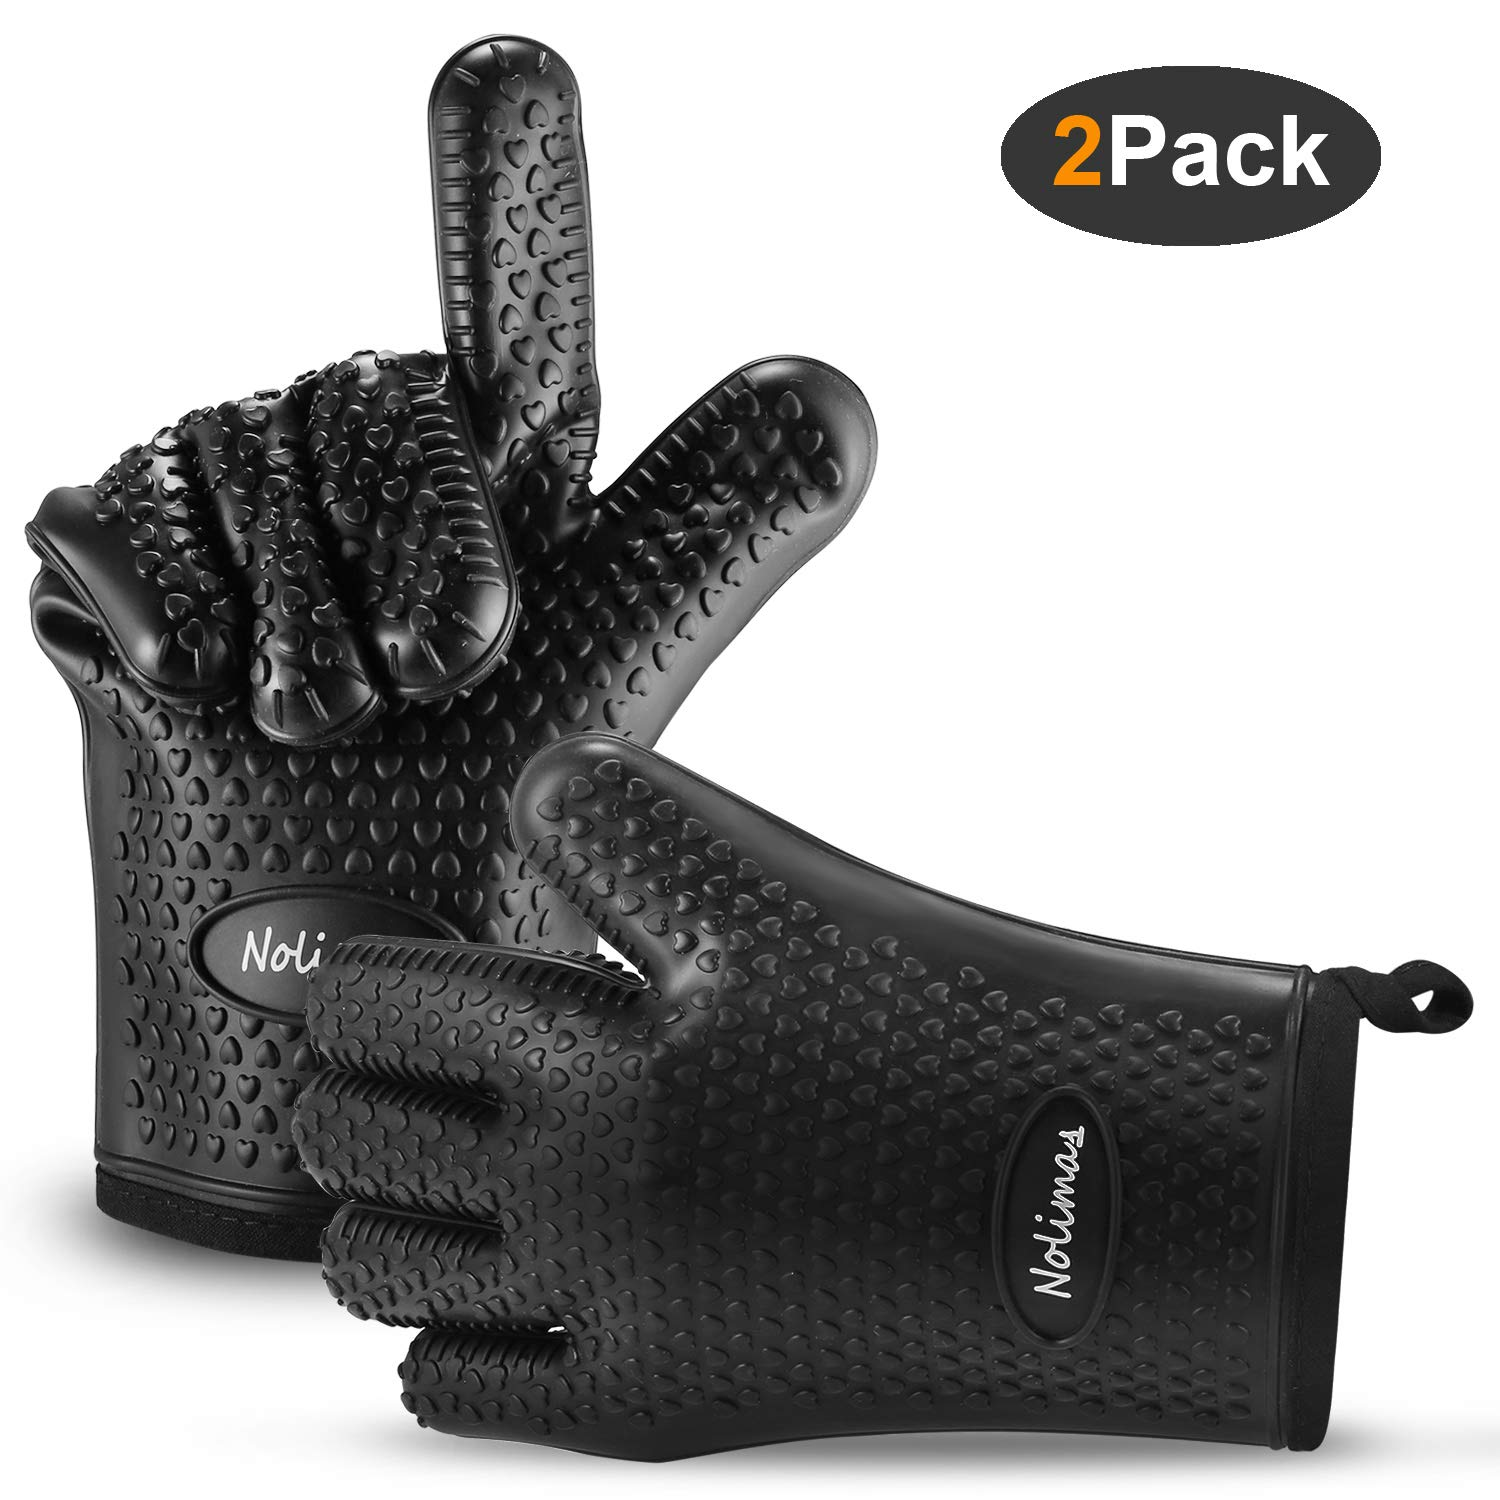 Nolimas Silicone Cooking Grilling Gloves,Heat Resistant Oven Mitt for Baking,BBQ,Kitchen,Waterproof Non-Slip Potholders with Inner Cotton Layer, Safe Handling of Pots and Pans,Black,1Pair